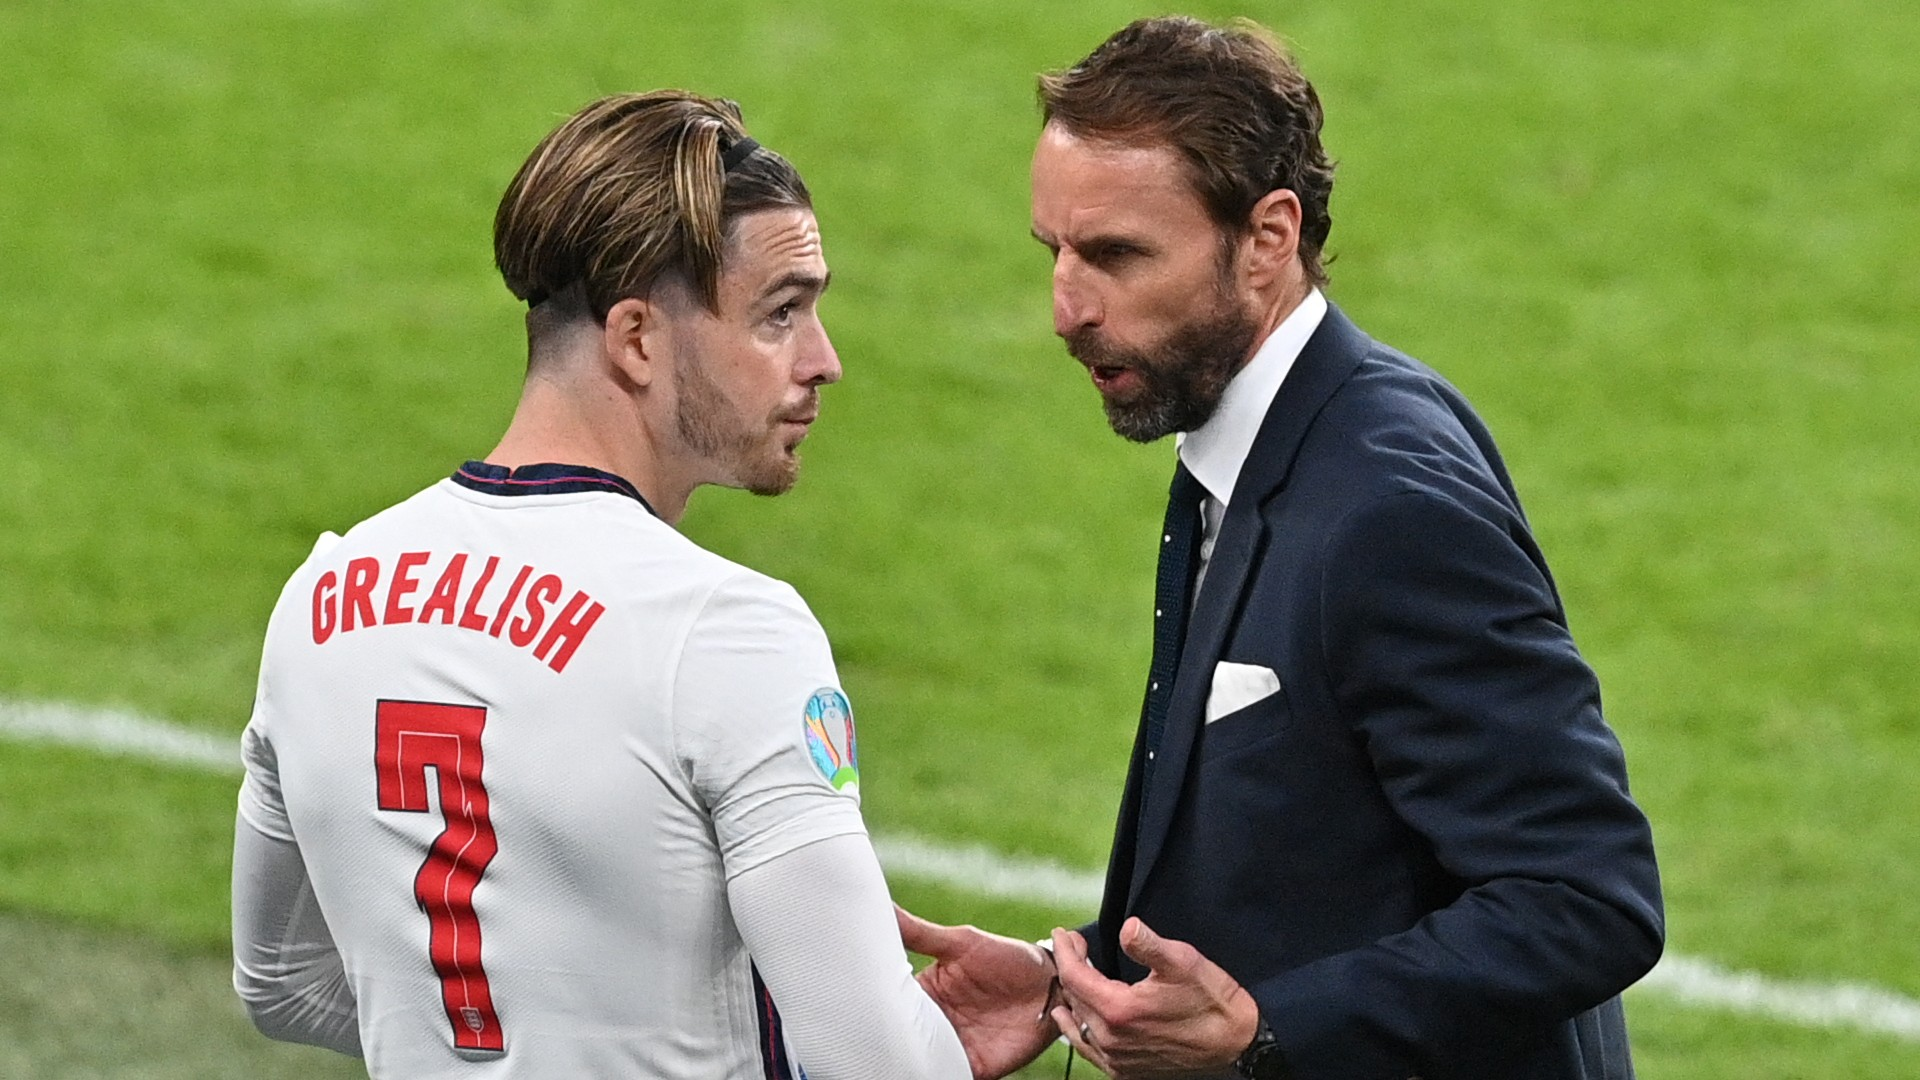 Southgate explains subbing Grealish on and off in England Euro 2020 semi-final win over Denmark